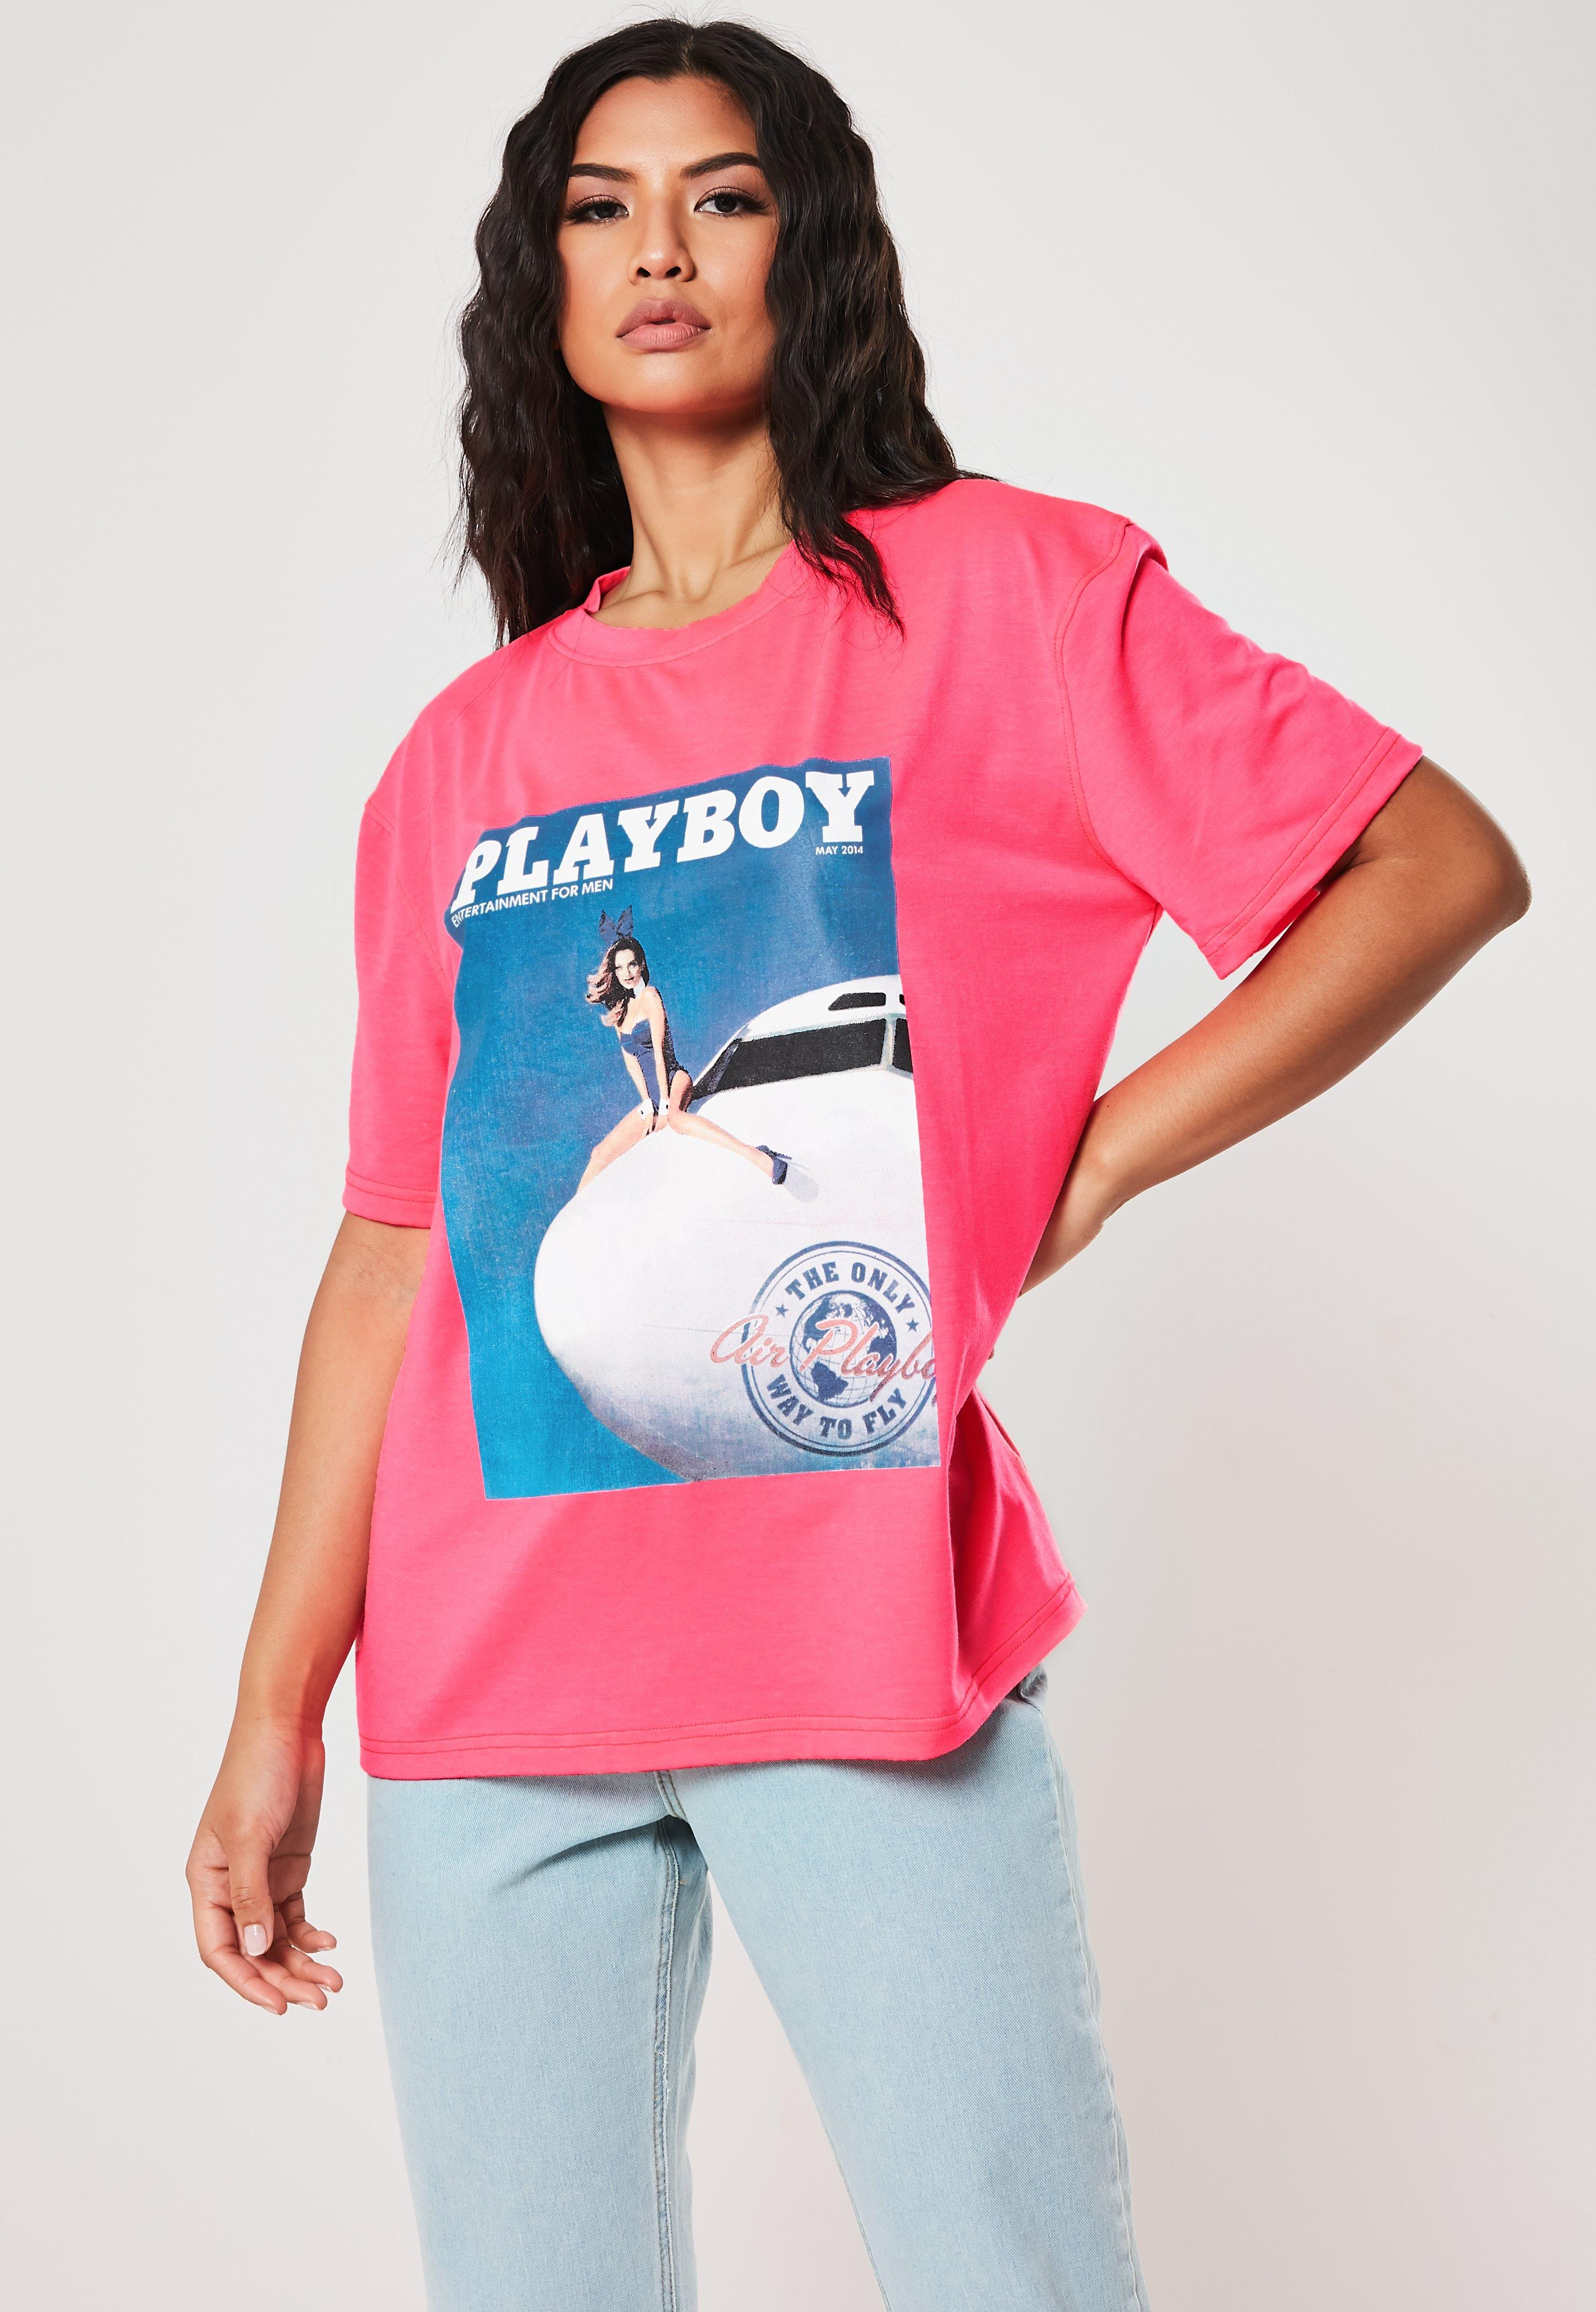 58f8c43a T-Shirts & Women's Tees - Missguided